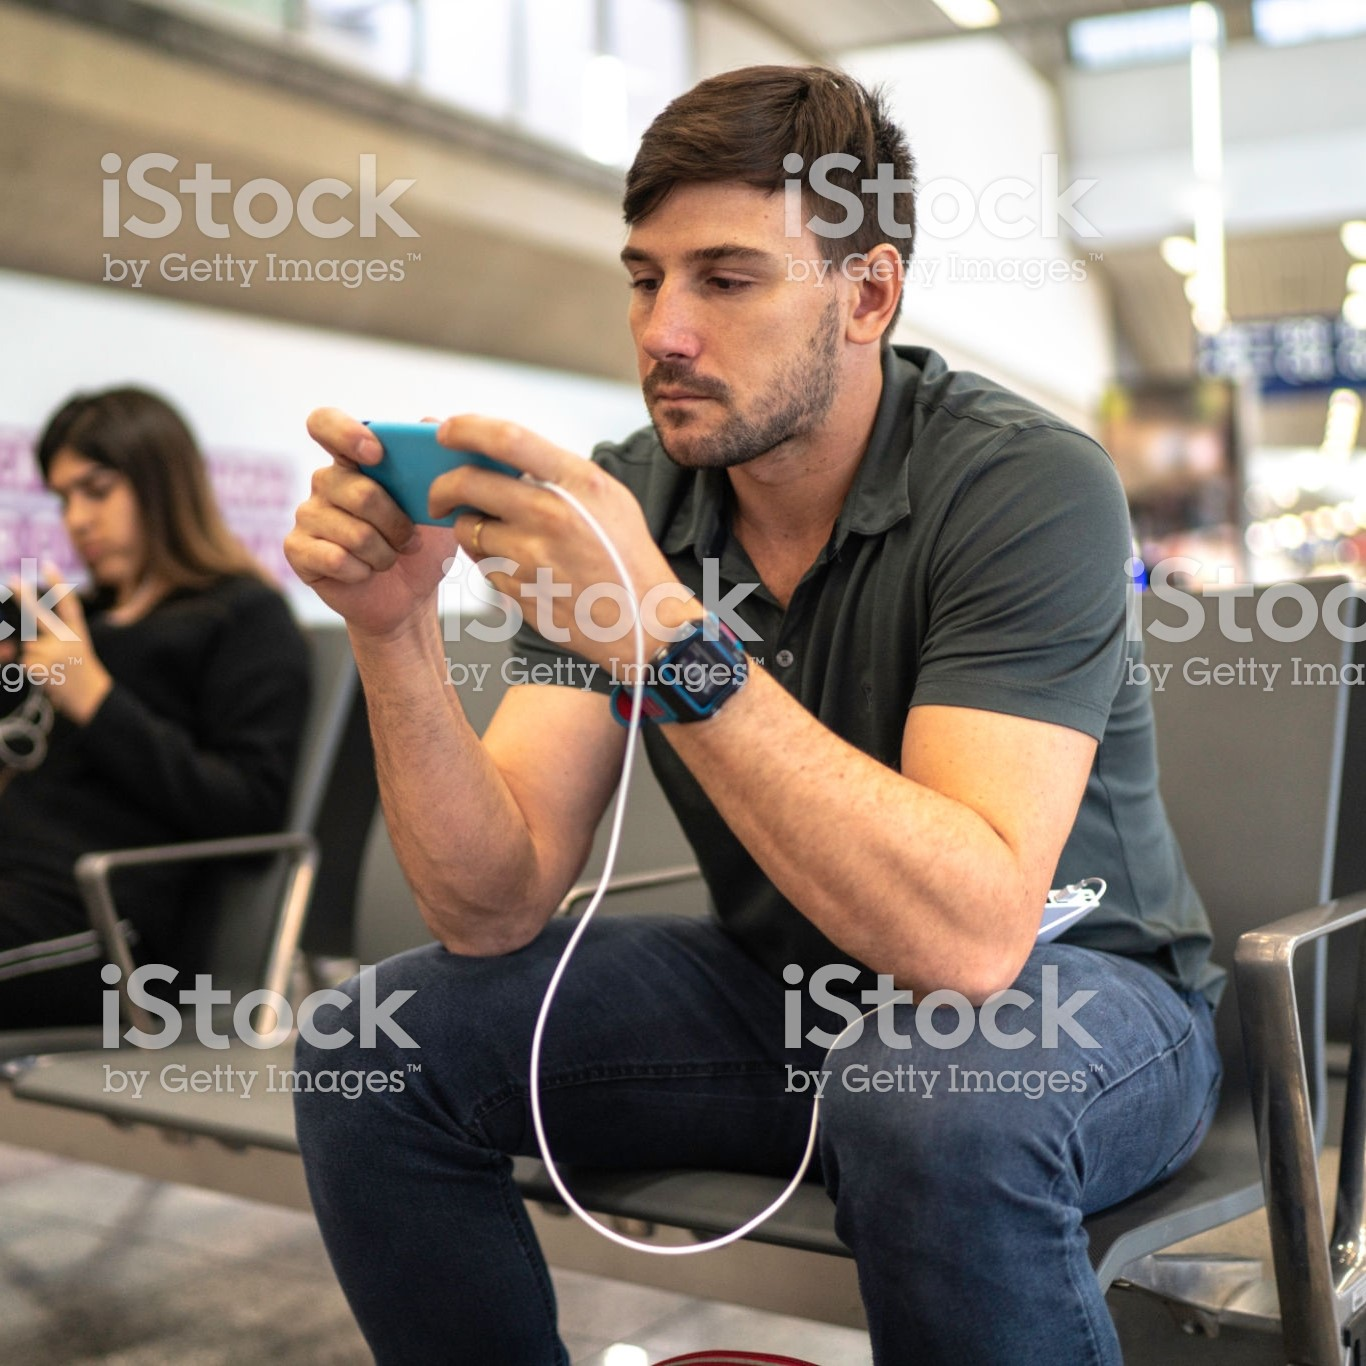 Man using and charging phone. He is holding a blue cell phone and appears to be typing. The phone is plugged into a portable battery, which is on his lap. He is a white man with brown hair and a short beard.